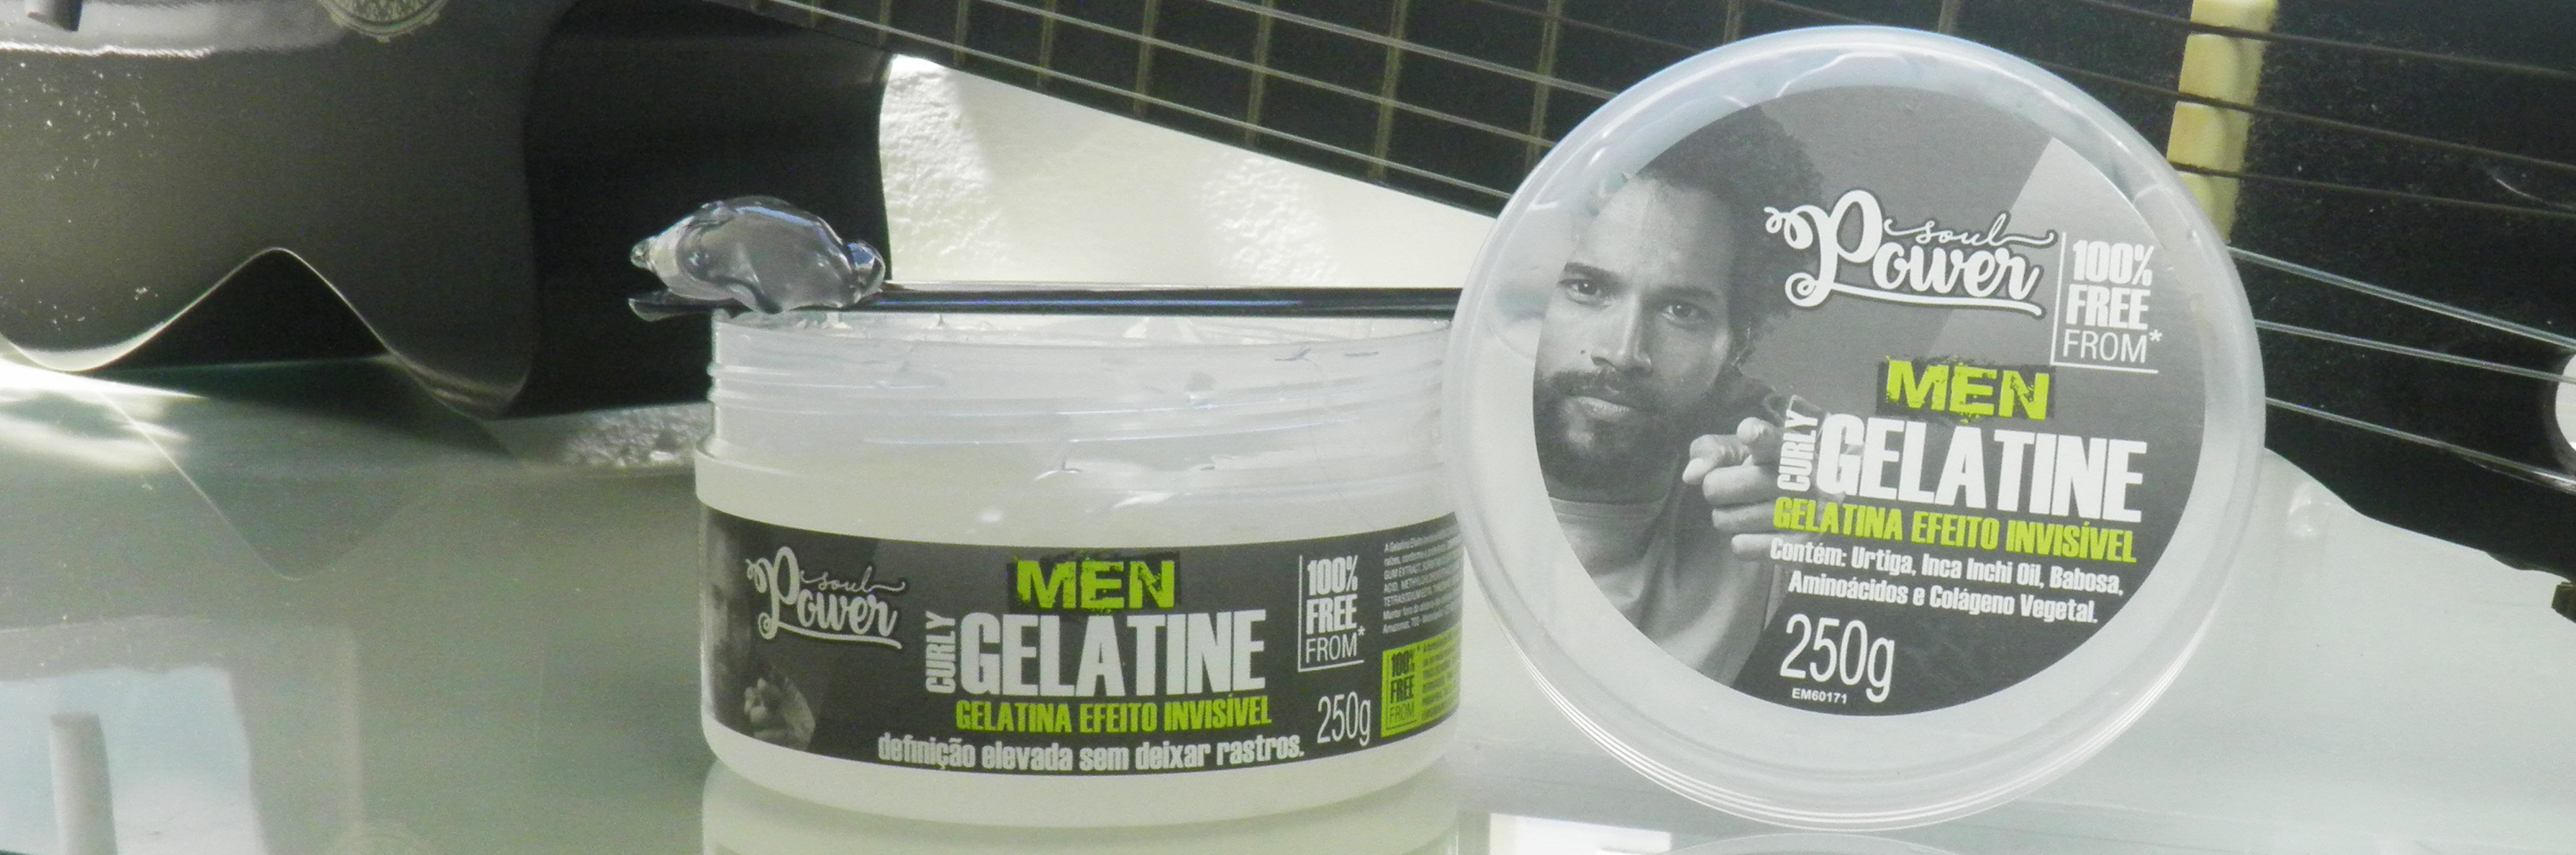 Onde encontrar para comprar Curly Gelatine - Soul Power Men (Resenha)